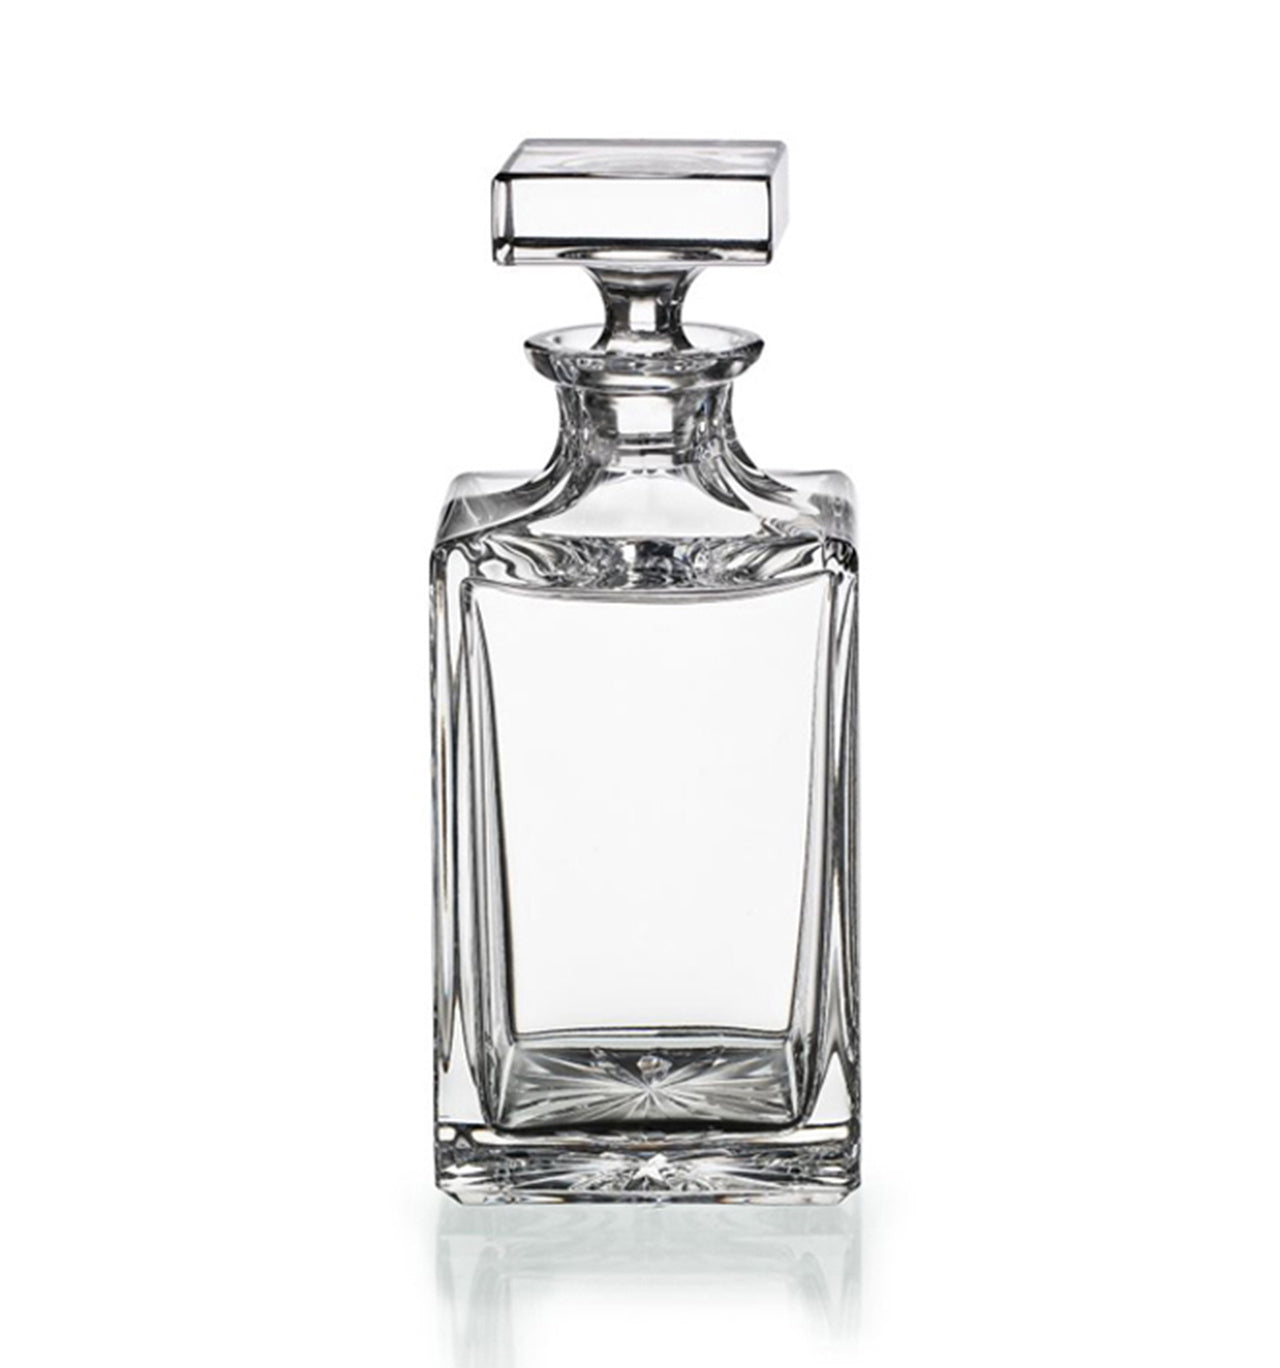 Whisky Decanter - Austin - Crystalware - Vista Alegre